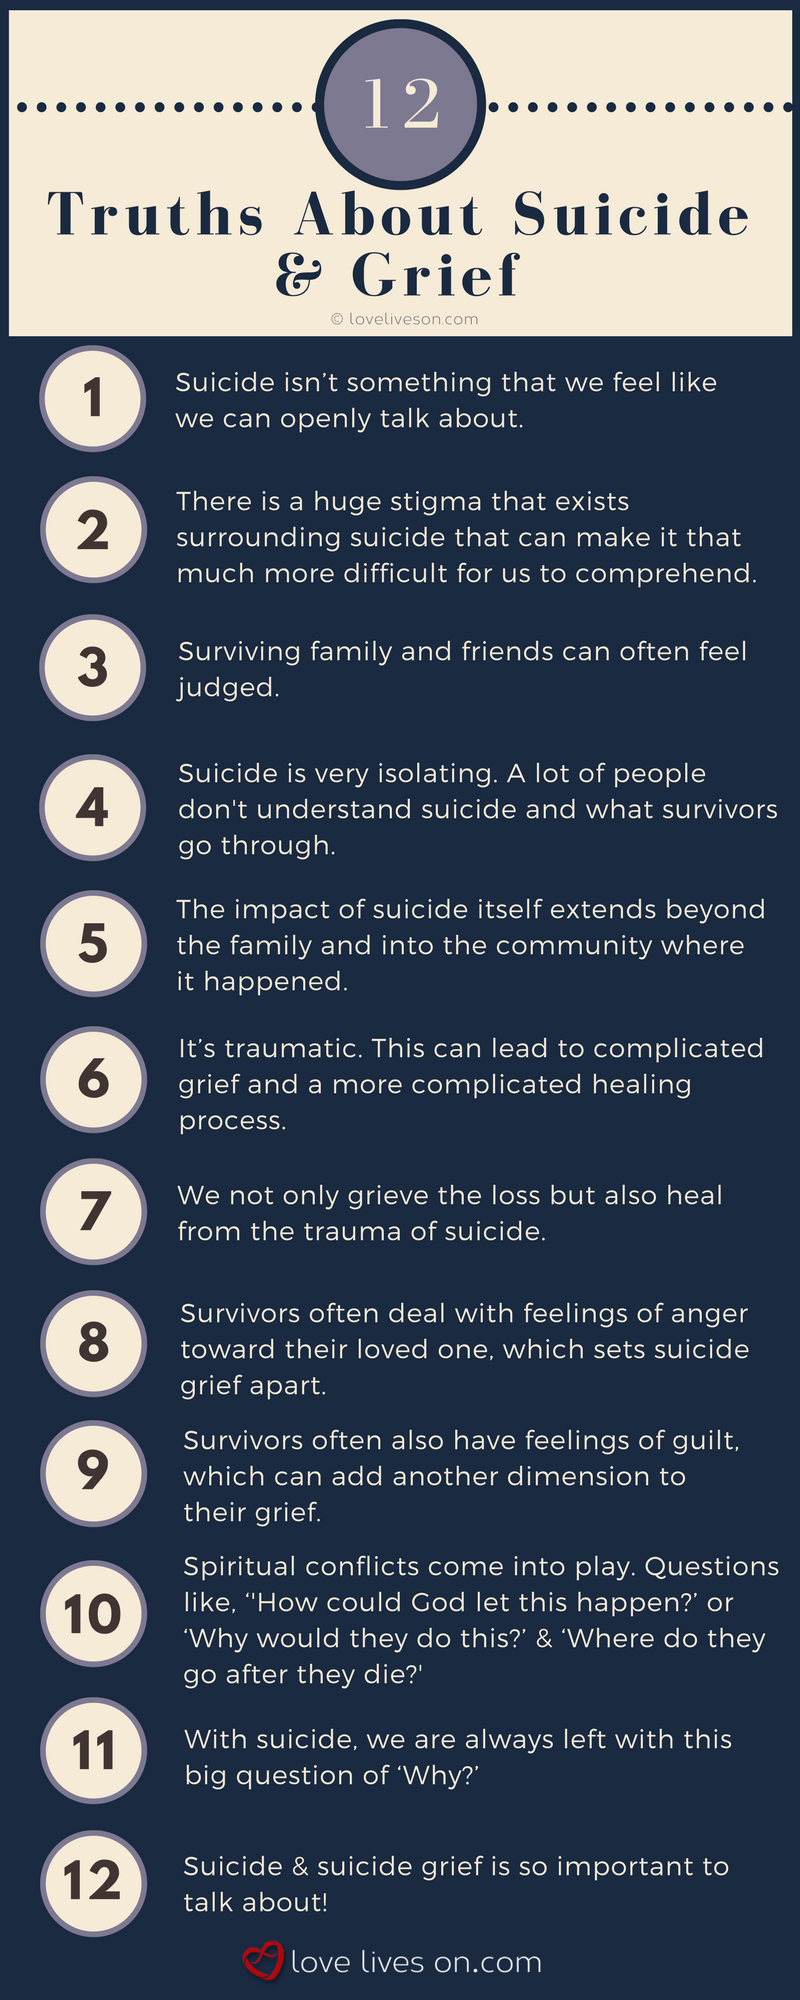 [Infographic] 12 Truths About Suicide Grief